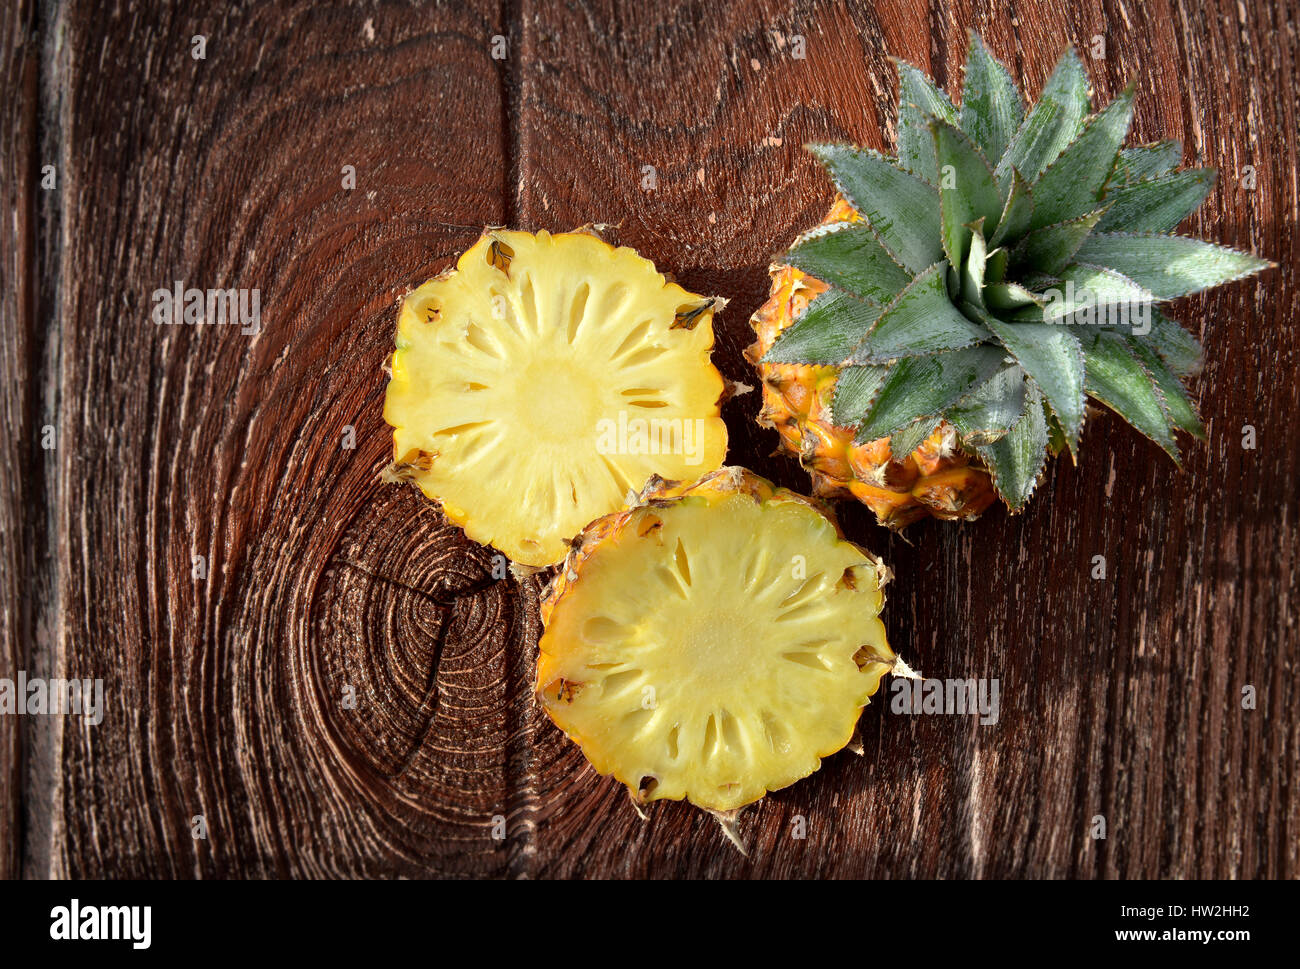 Fresh Asian small pineapple on wooden plate in outdoor hard sunlight and dark shadow - Stock Image